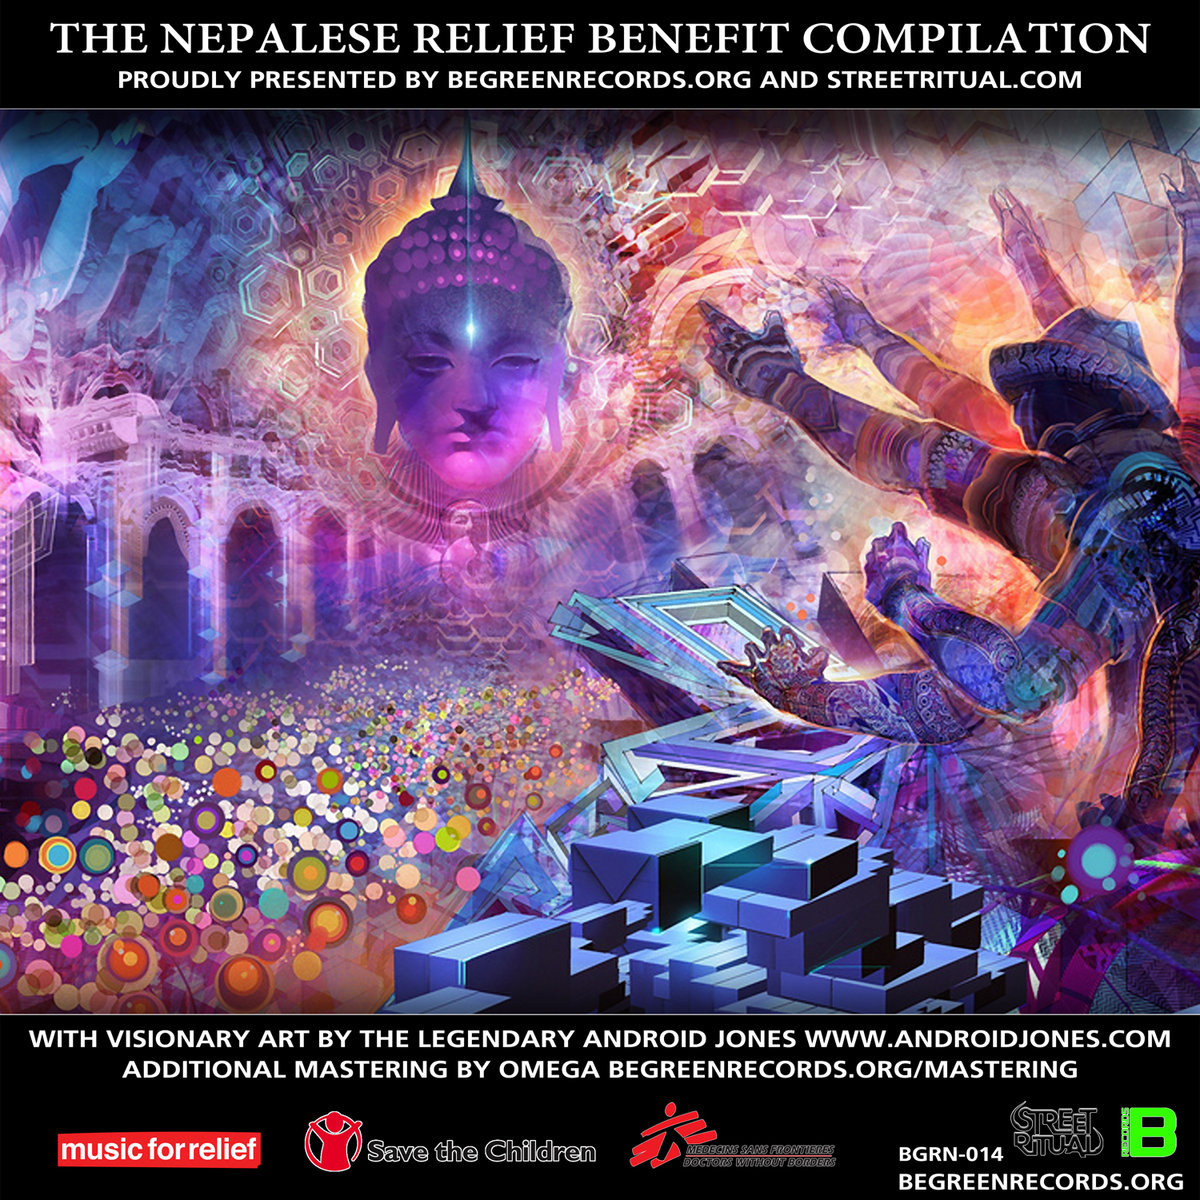 POCKiTZ - Good Sh-t Bad Sh-t @ 'Various Artists - The Nepalese Relief Benefit Compilation' album (bass, electronic)